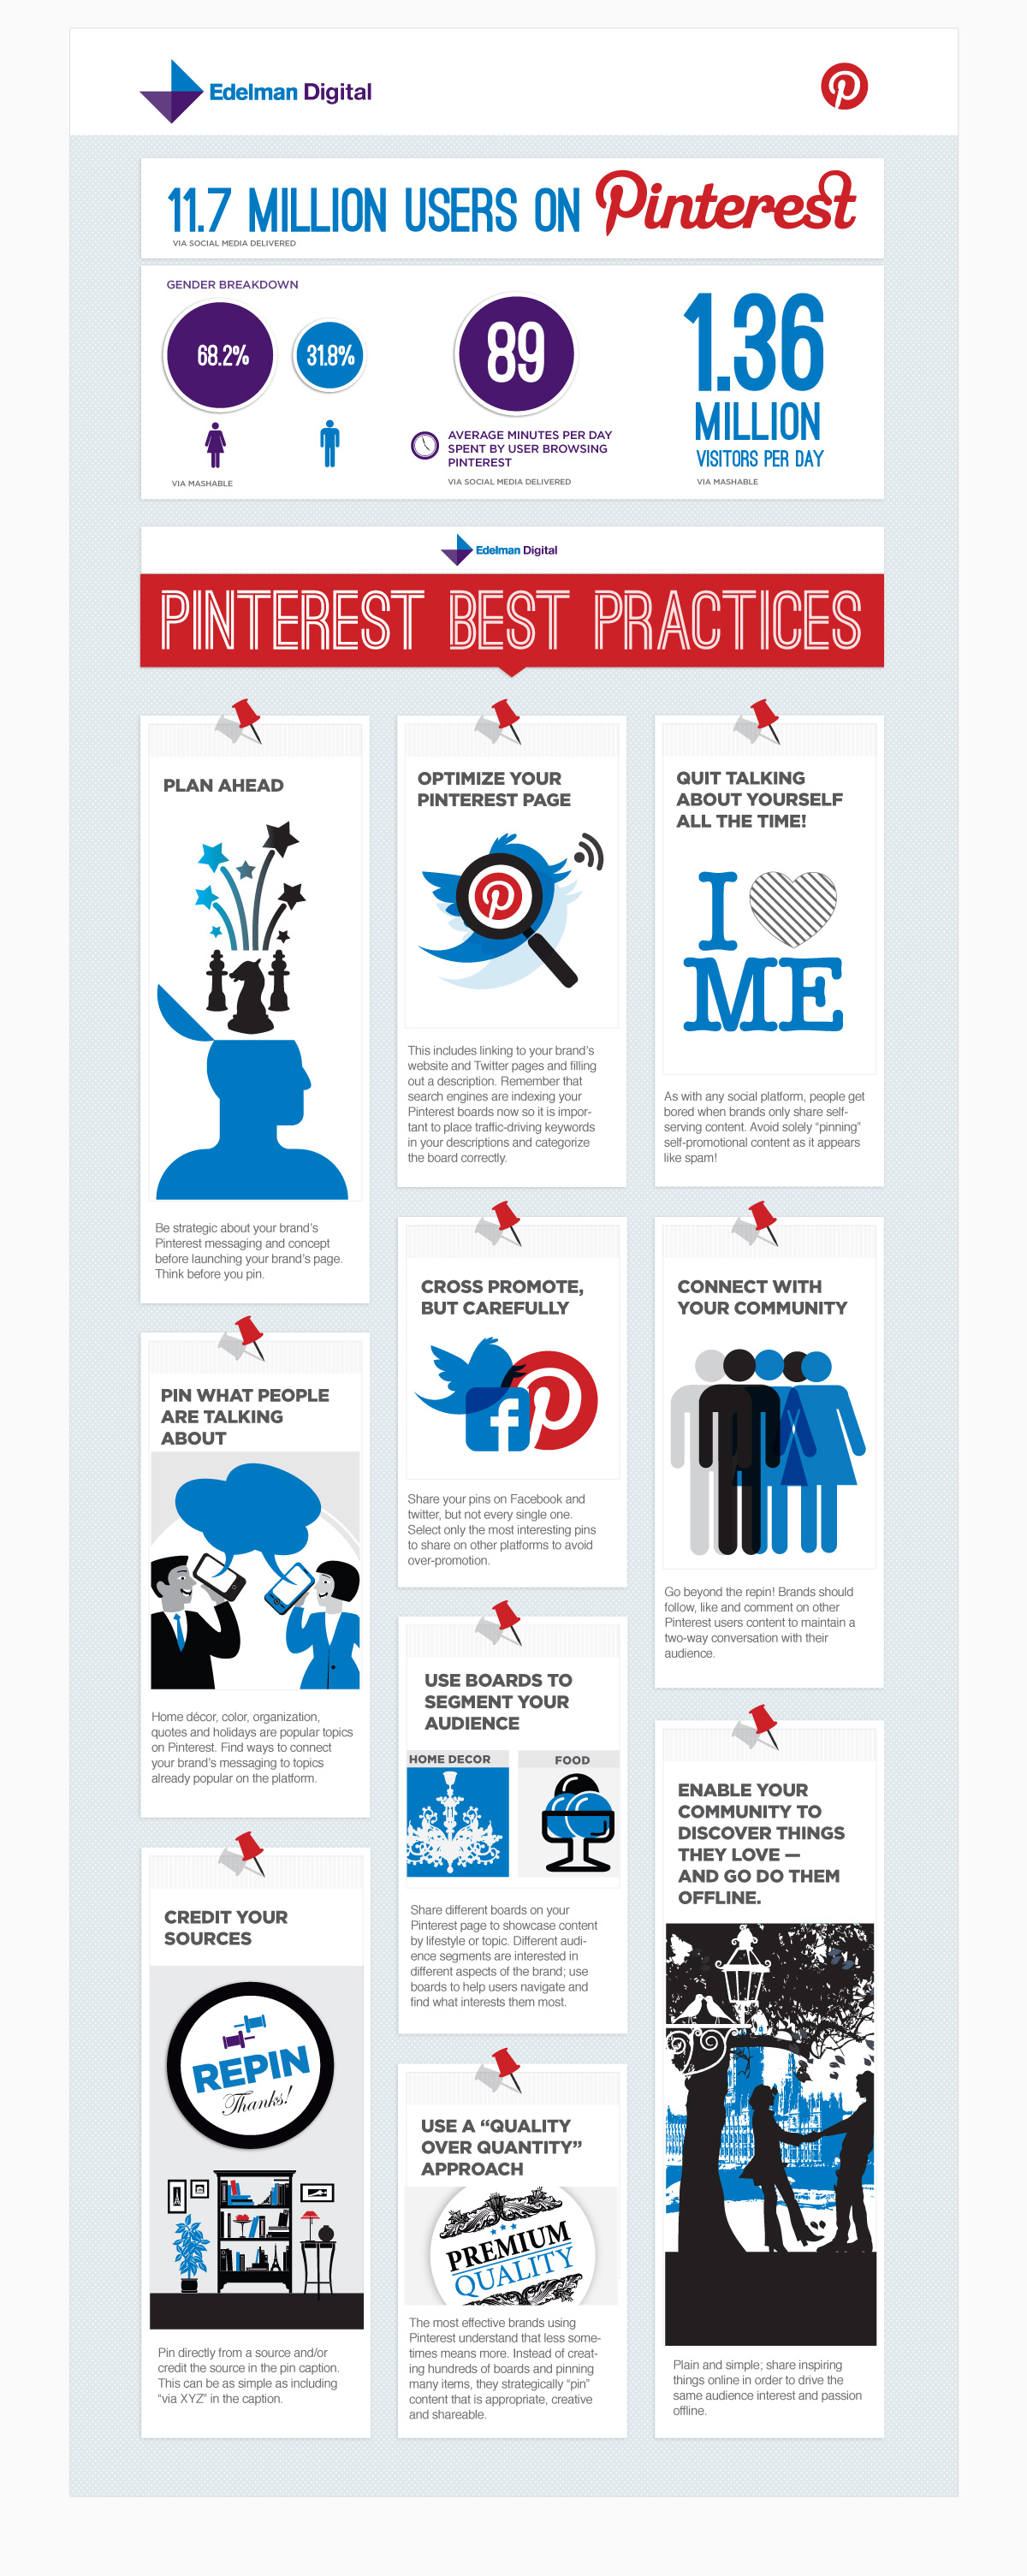 Pinterest-Best-Practices-infographic